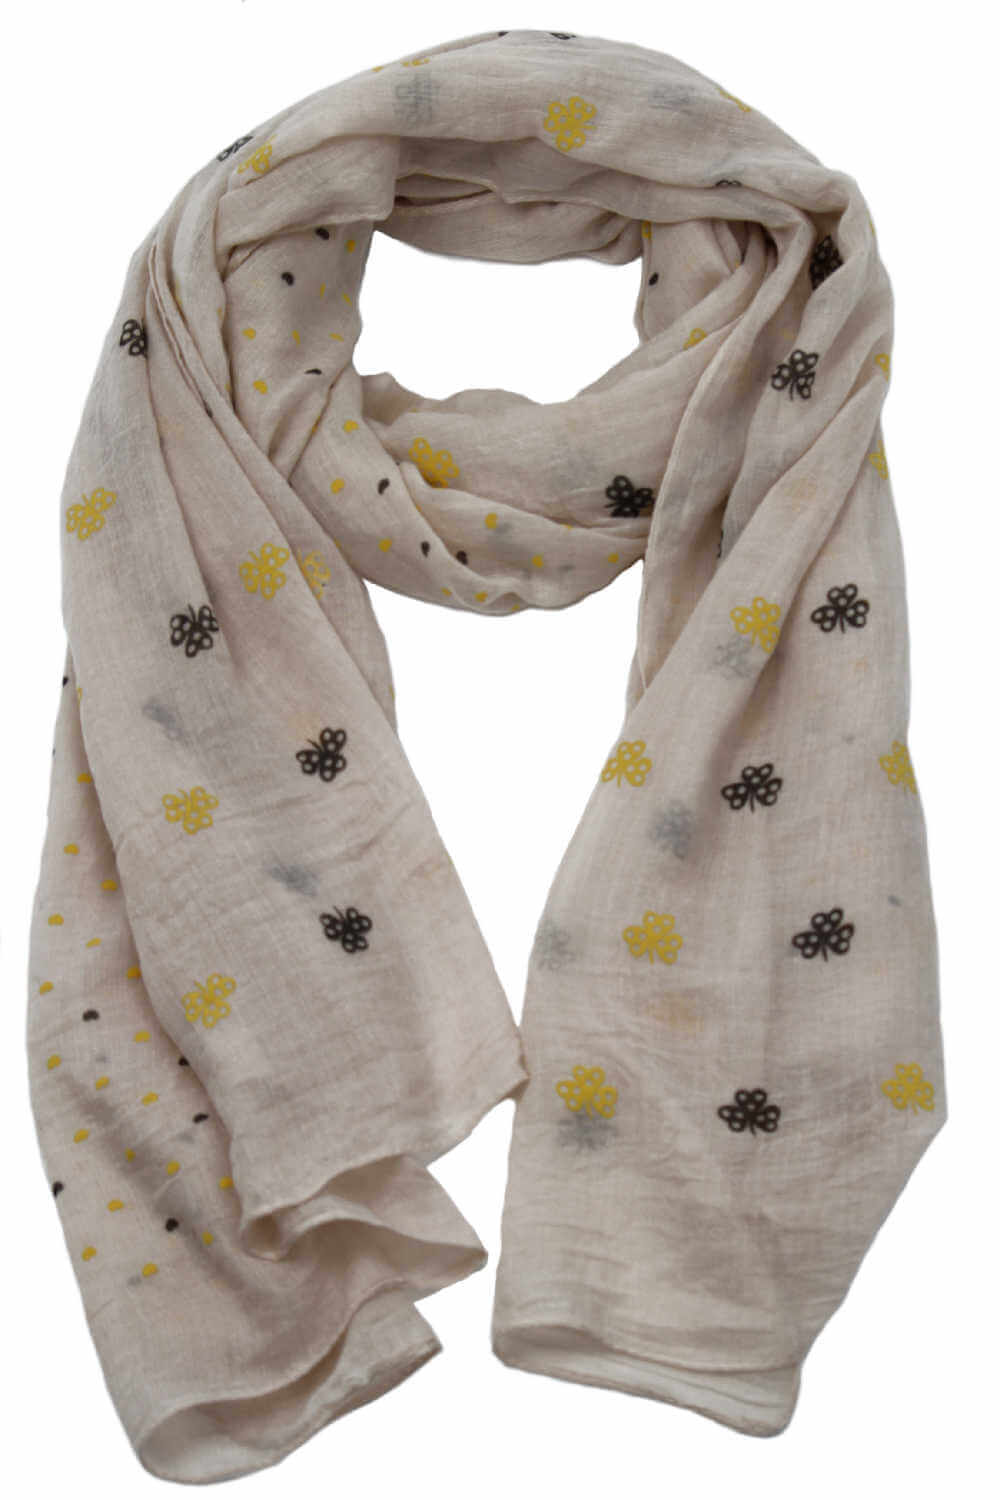 Ladies-scarf-blue-floral-heart-design